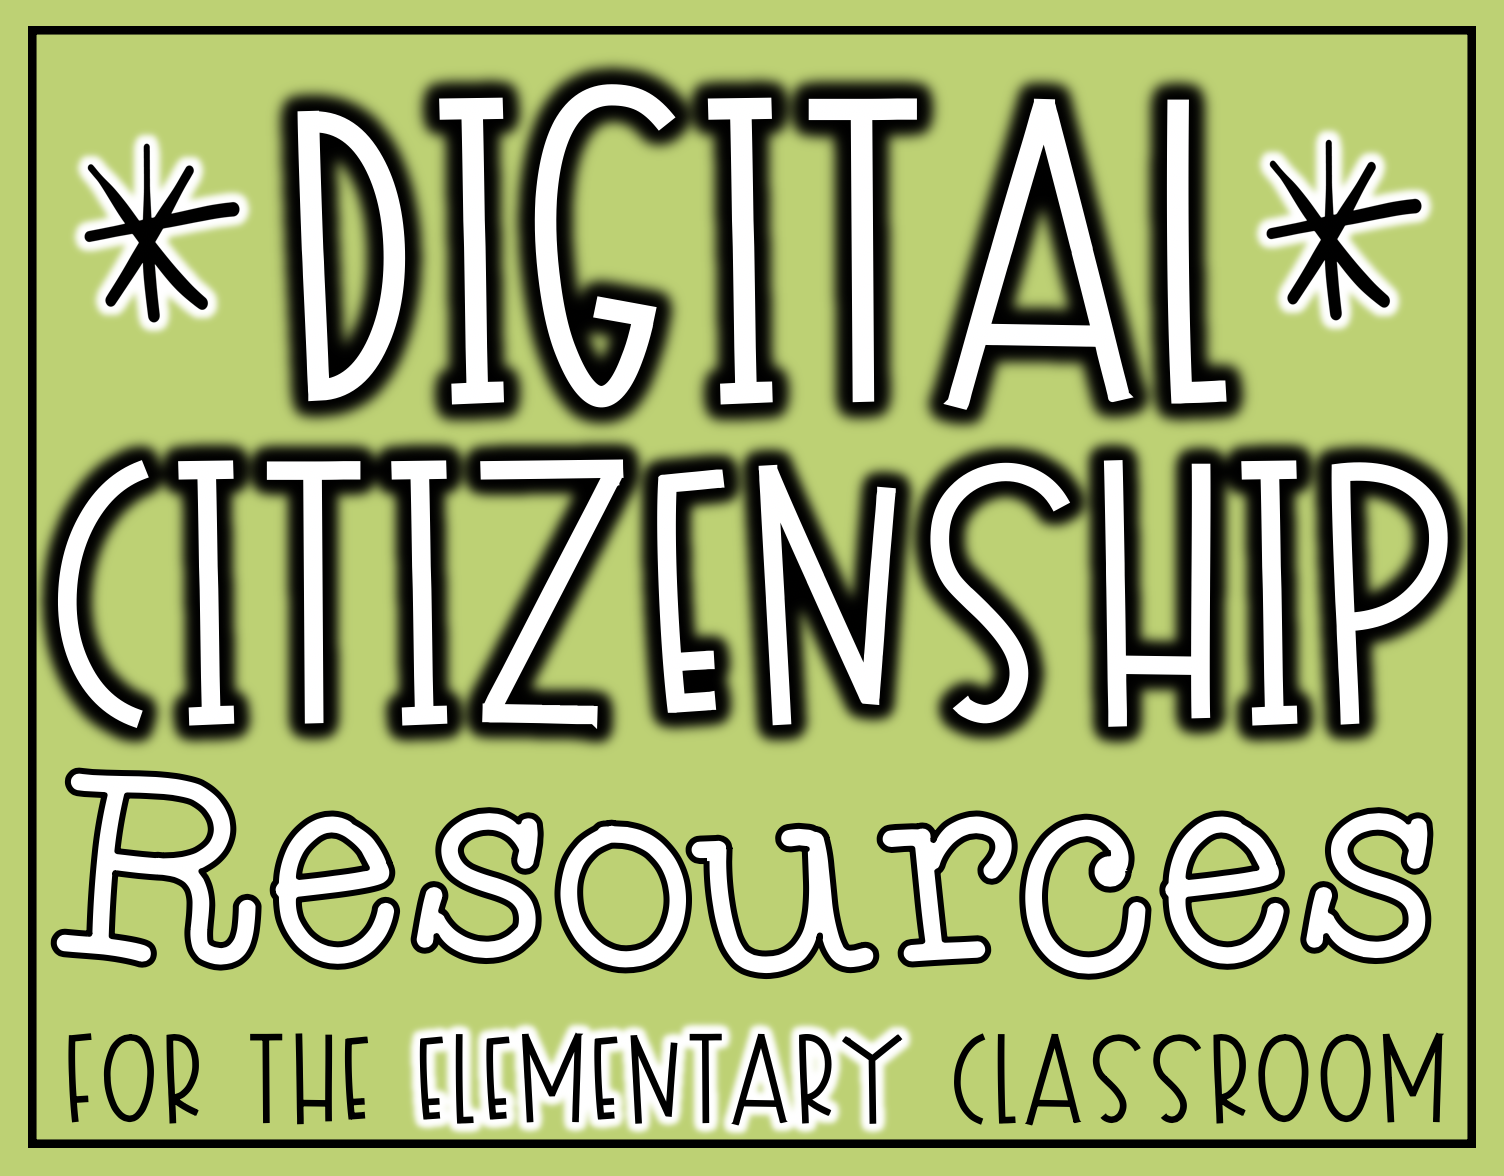 hight resolution of Digital Citizenship Resources for the Elementary Classroom   The Techie  Teacher®